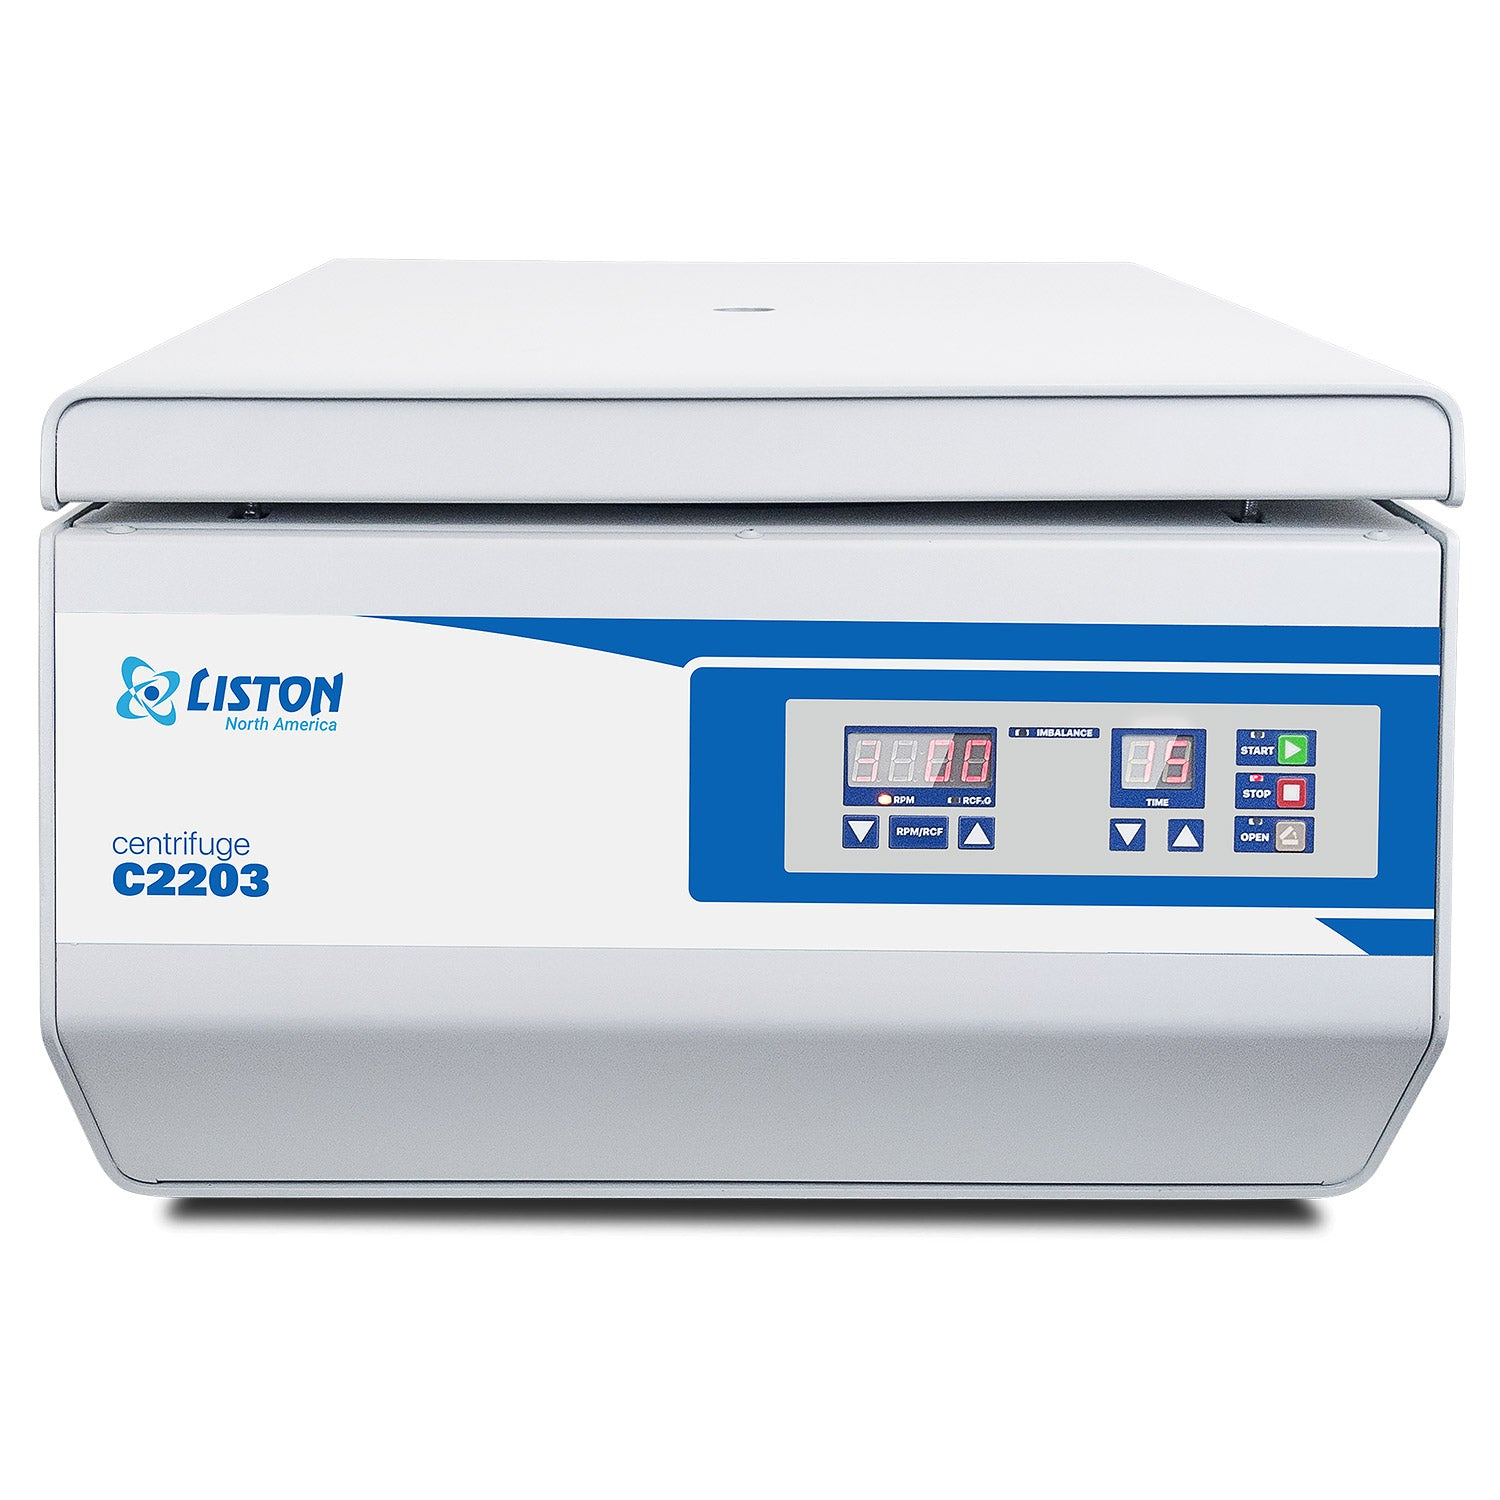 LISTON C2203 Swing-Out Benchtop Centrifuge with Rotor Included for Clinical and Research Use